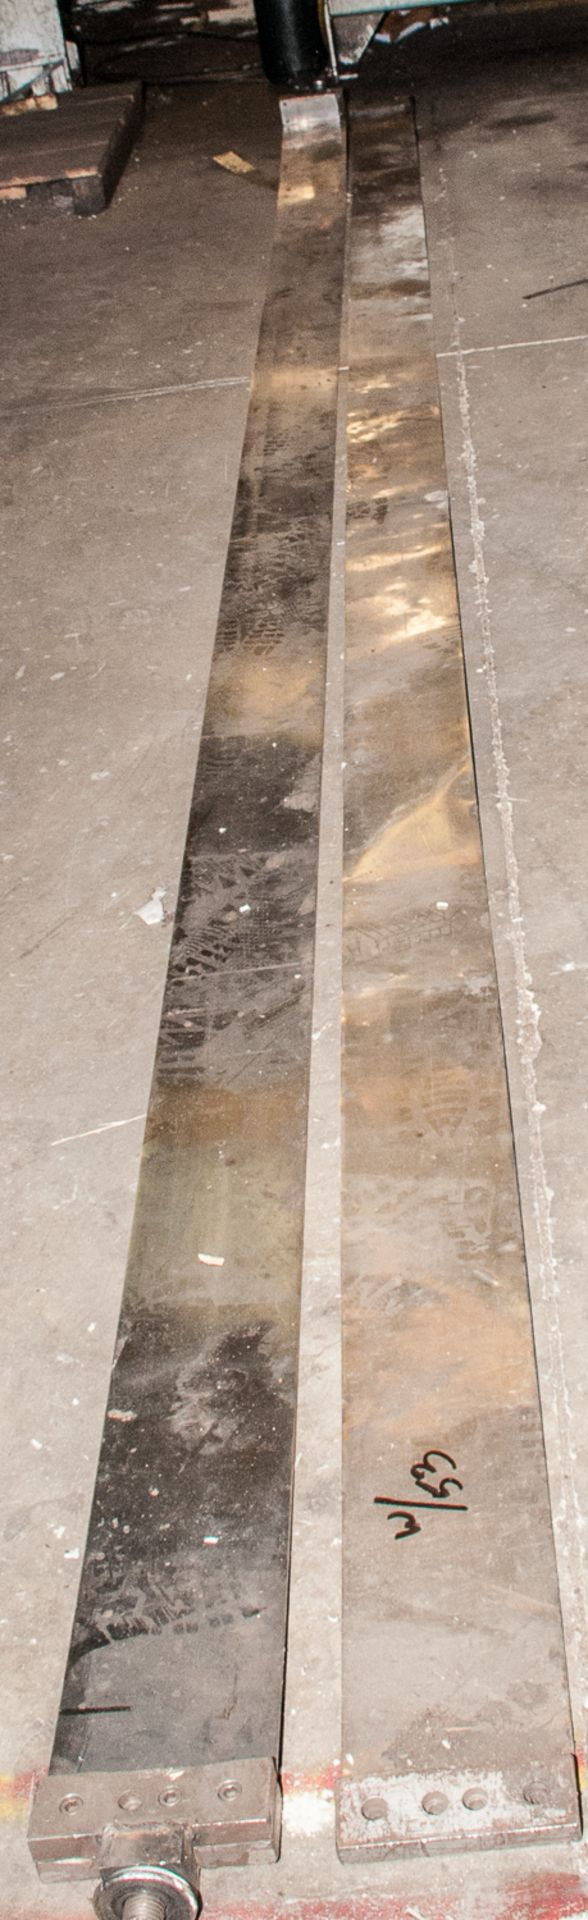 Extra Shear Blades (used) and Seperator guides for Lot 52 - Image 3 of 3